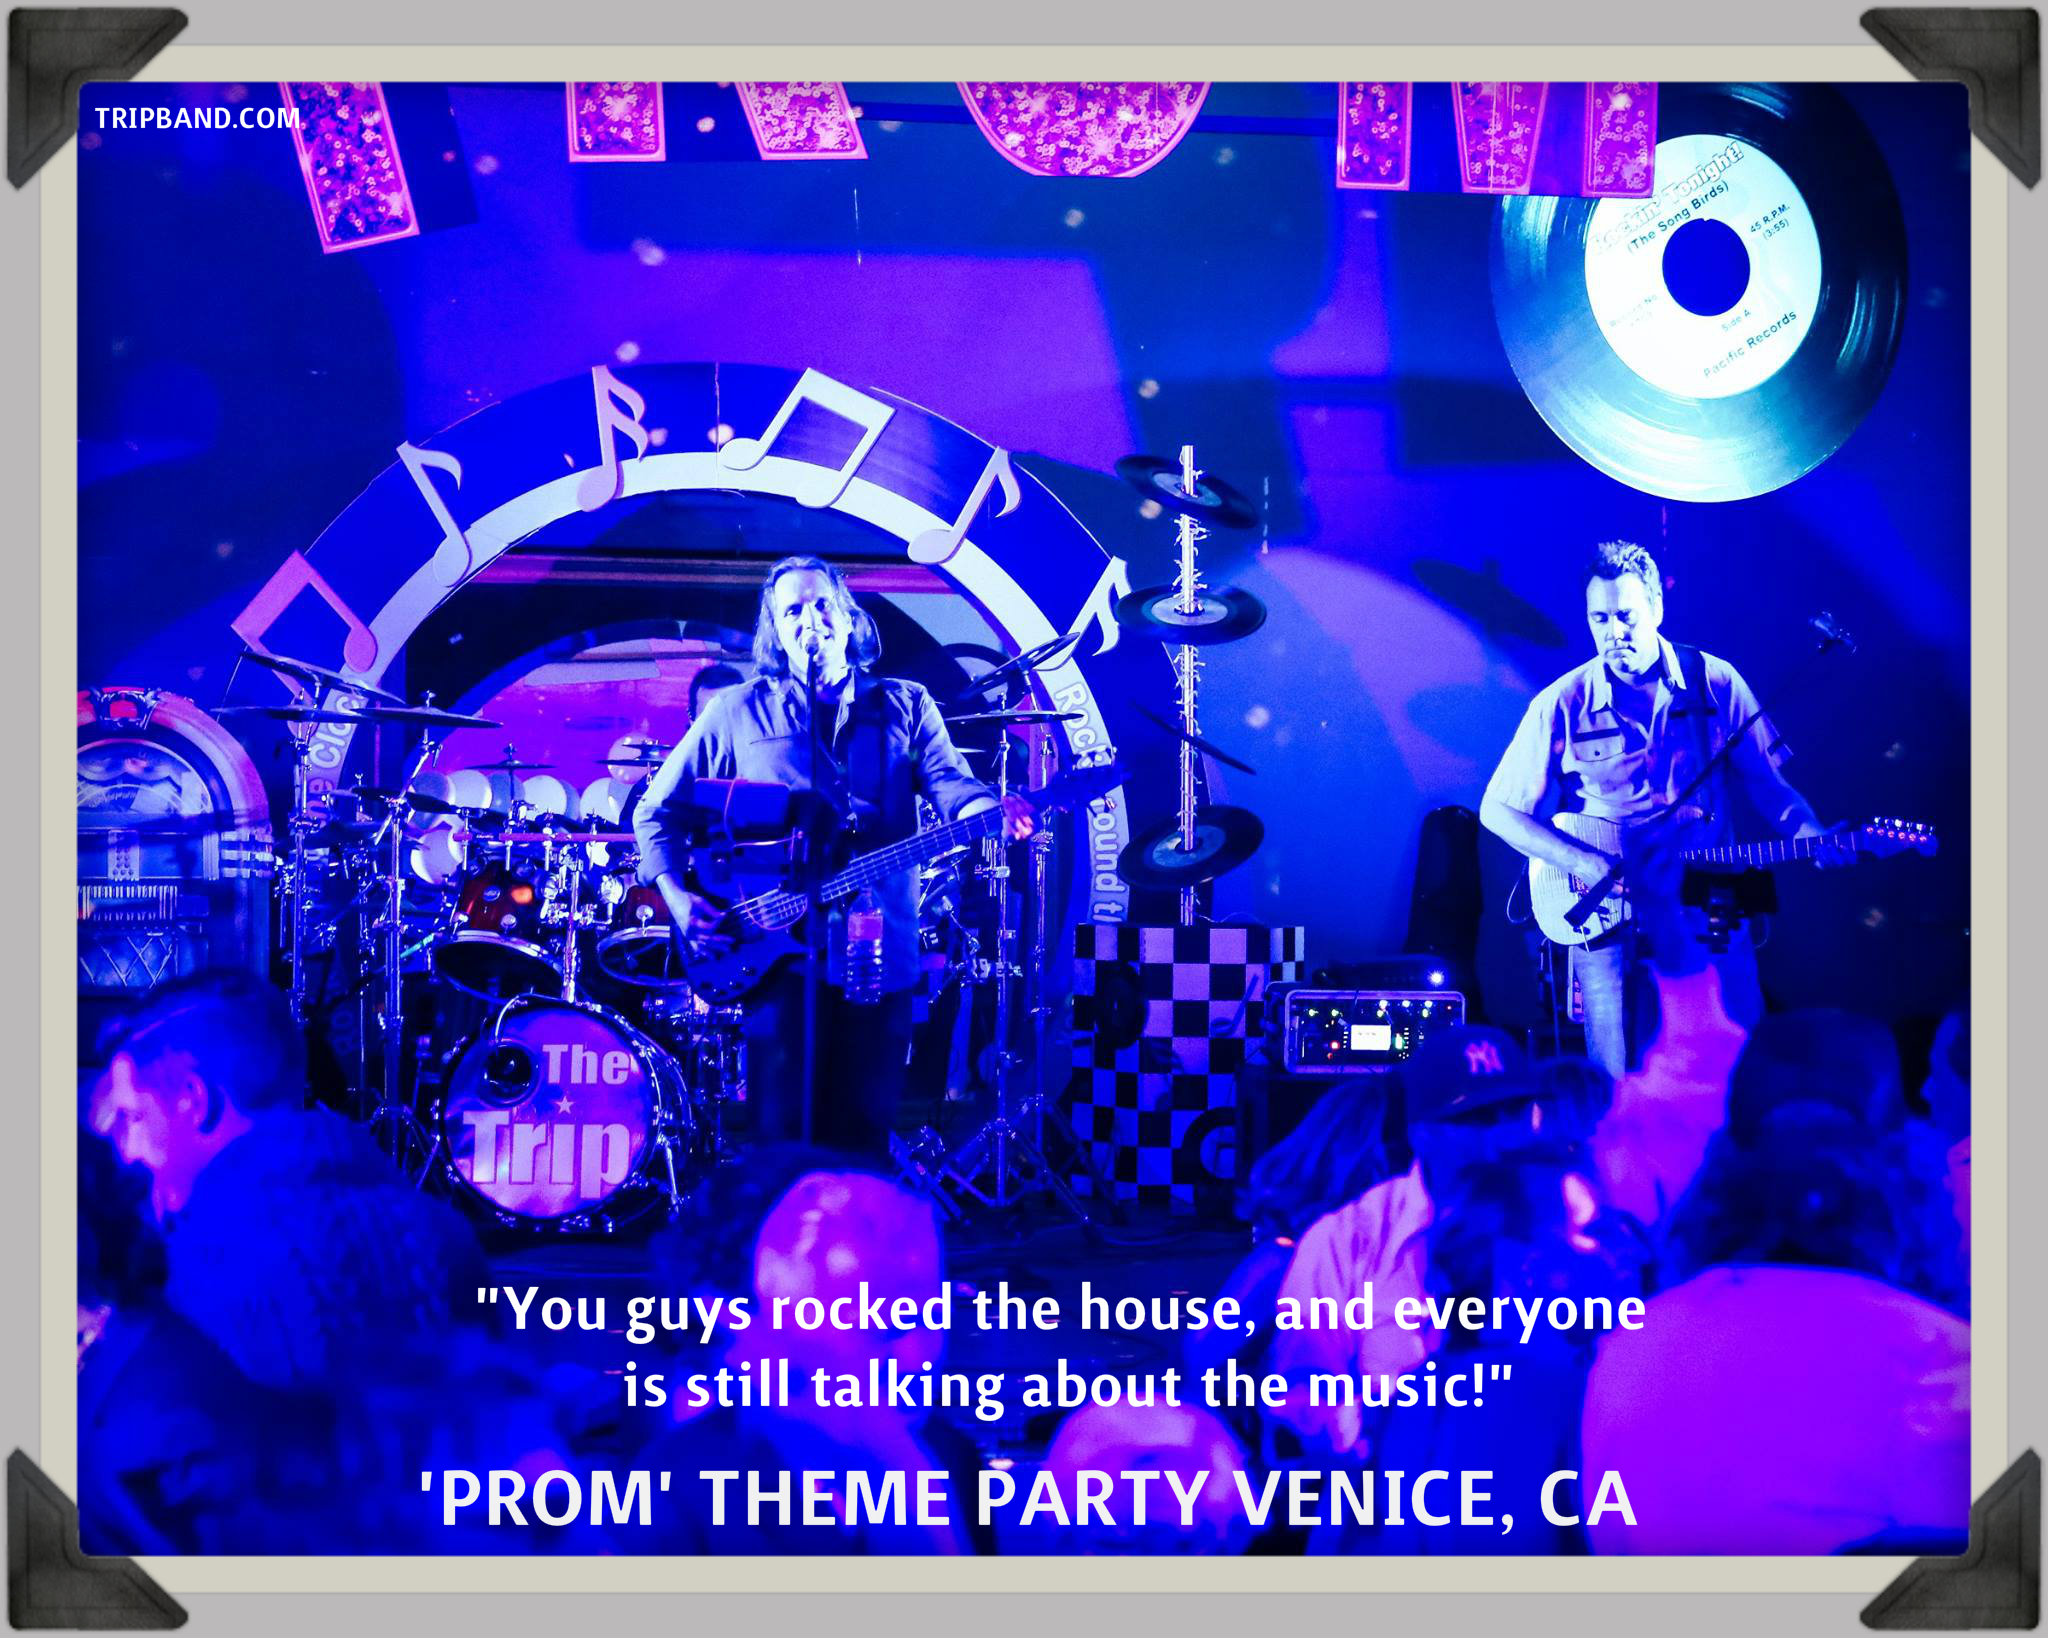 VENICE PROM PARTY